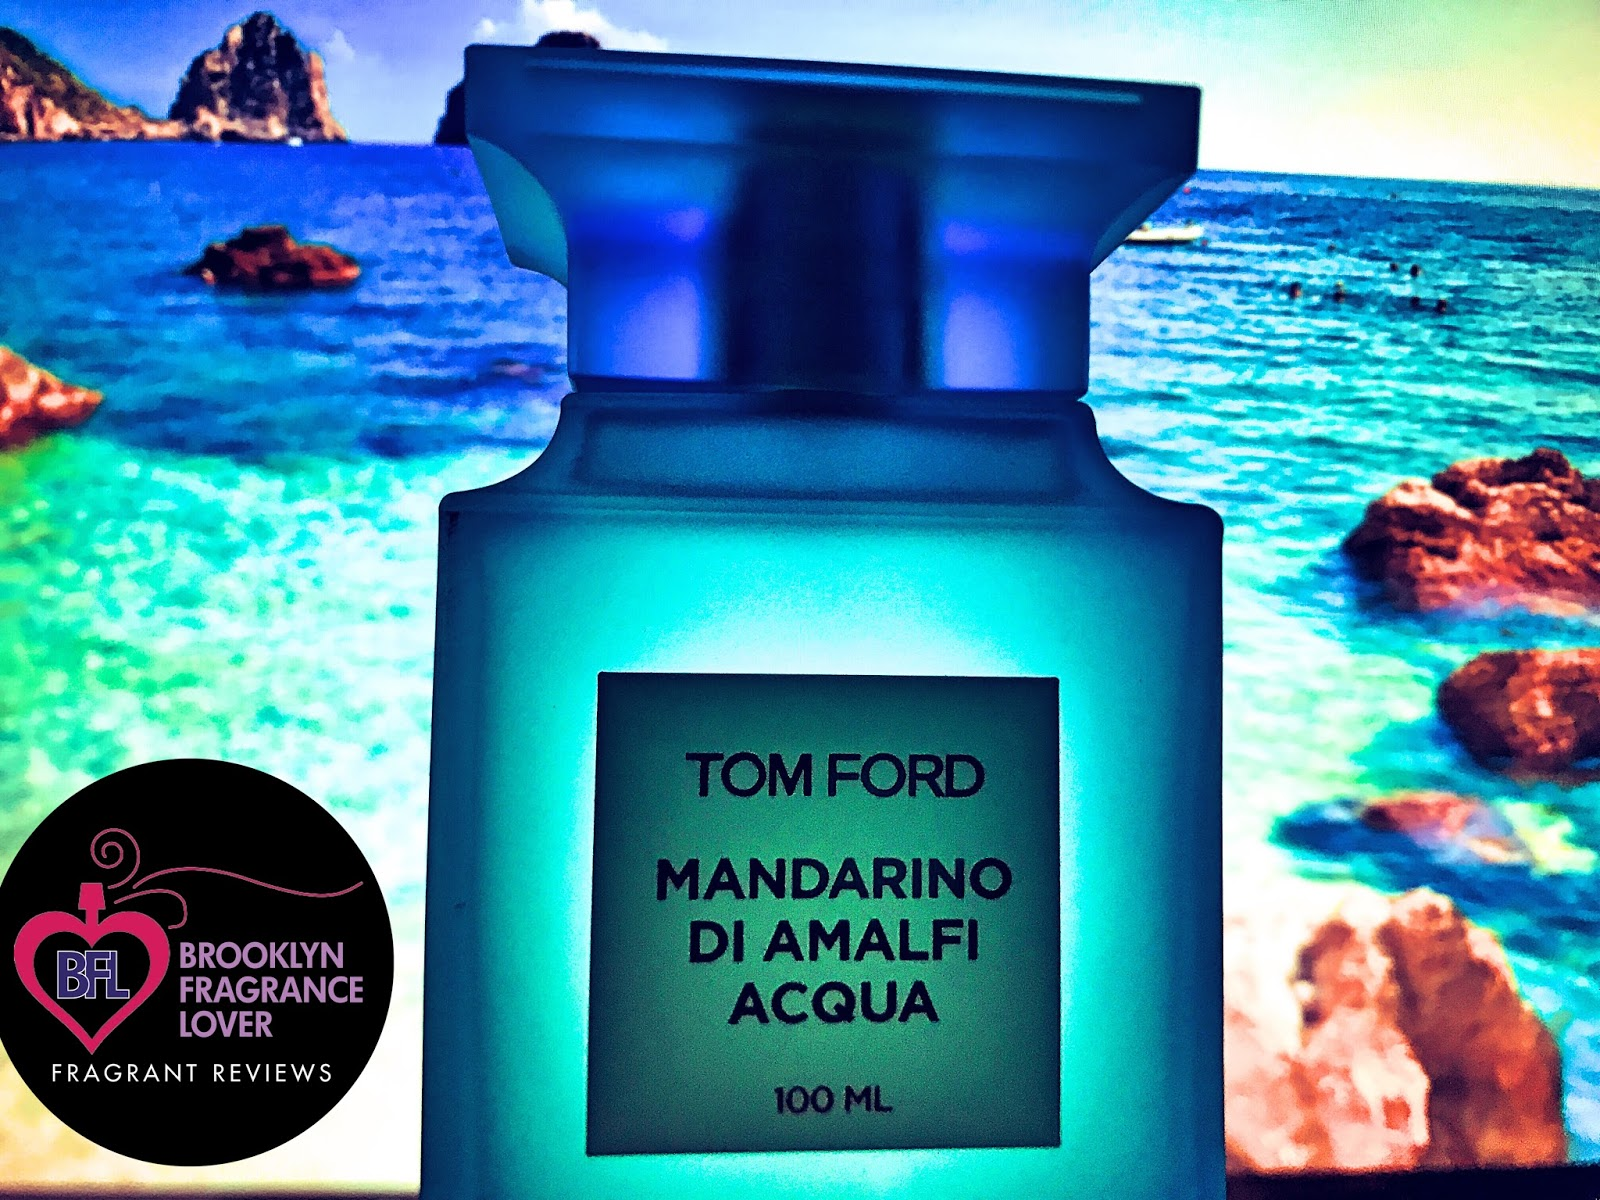 brooklyn fragrance lover new tom ford private blend. Black Bedroom Furniture Sets. Home Design Ideas